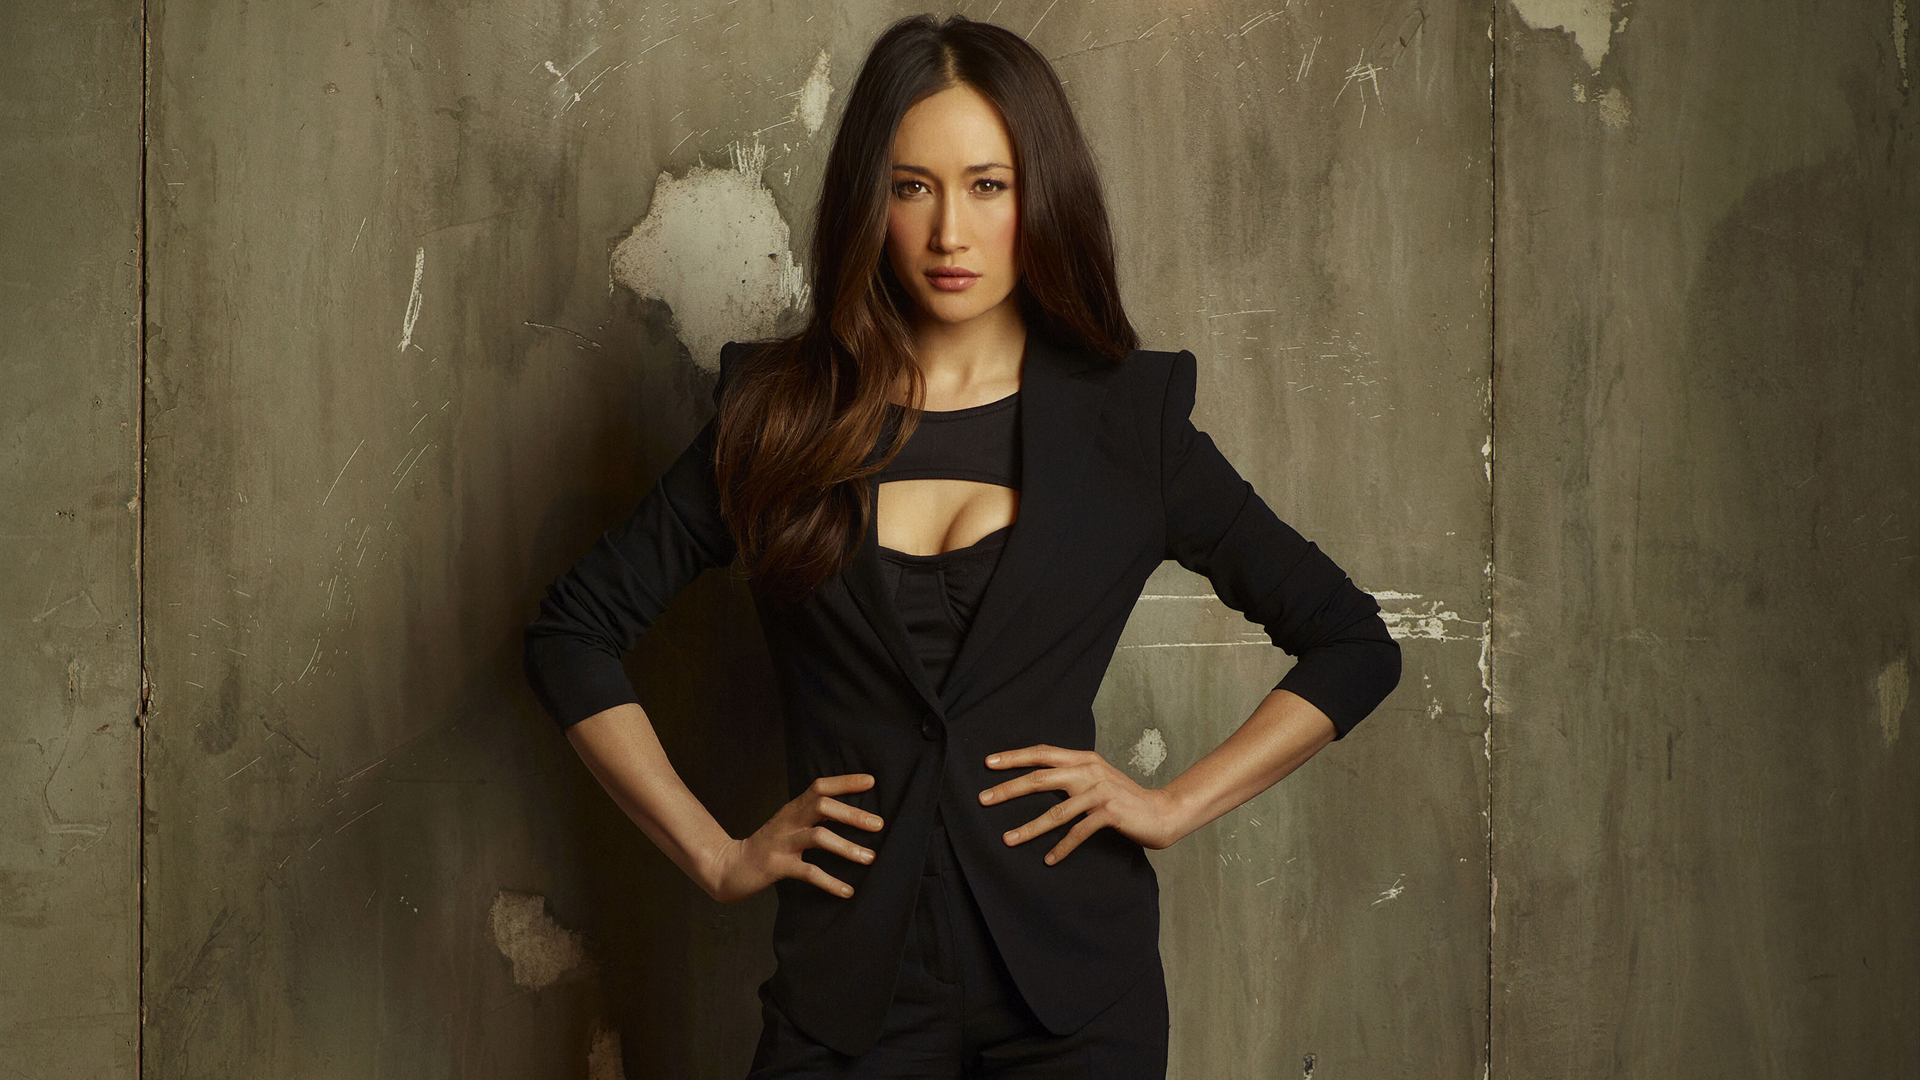 1920x1080 - Maggie Q Wallpapers 13